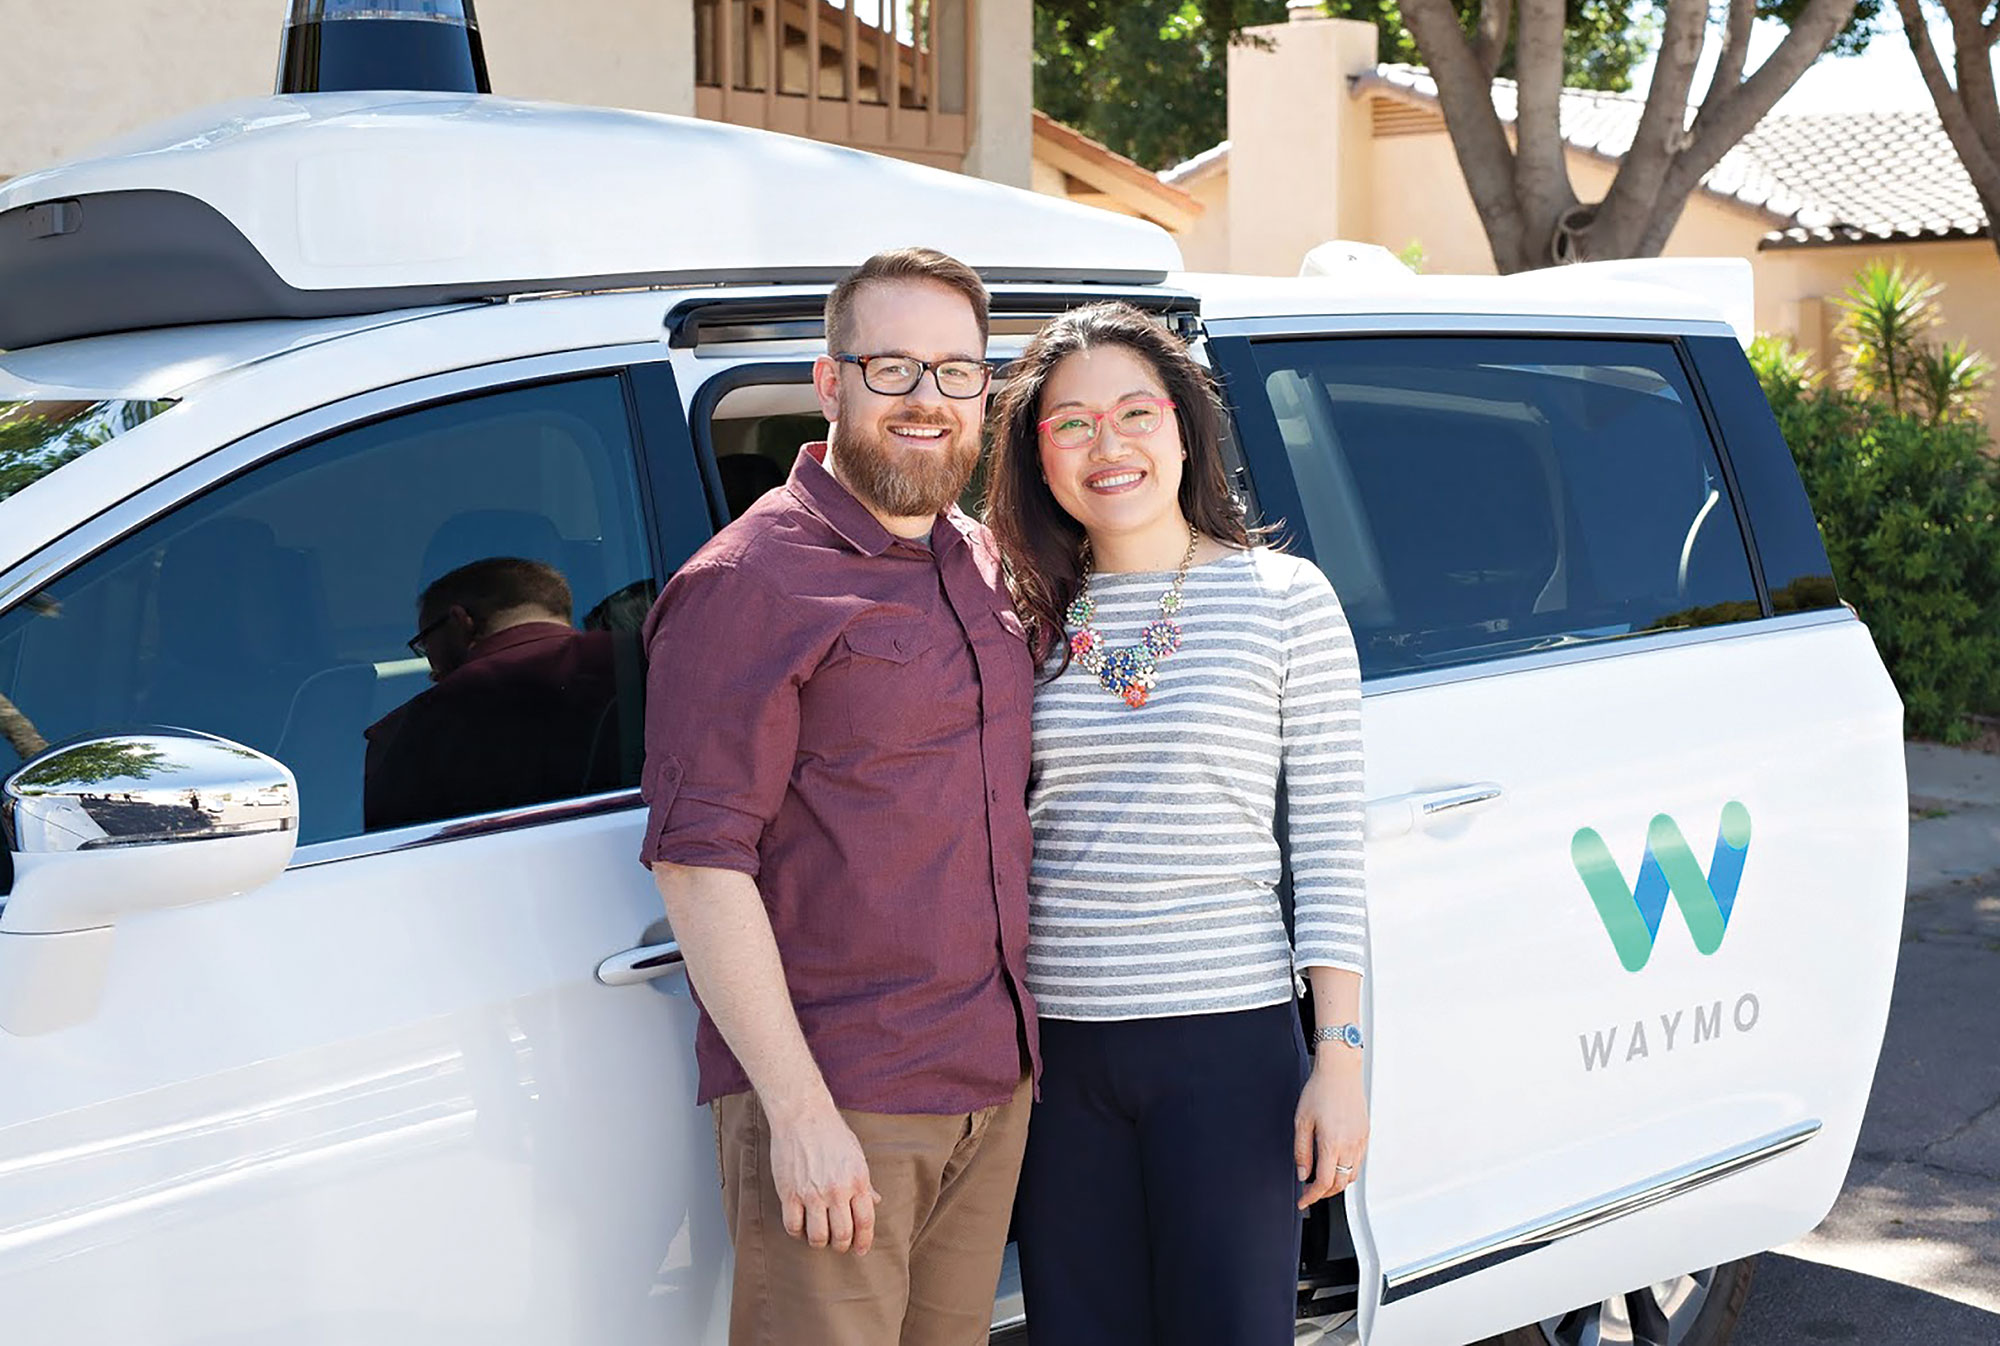 Paul Welden and Amy Chou started utilizing driverless vehicles after each suffered a traumatic car accident.; Photo courtesy Waymo